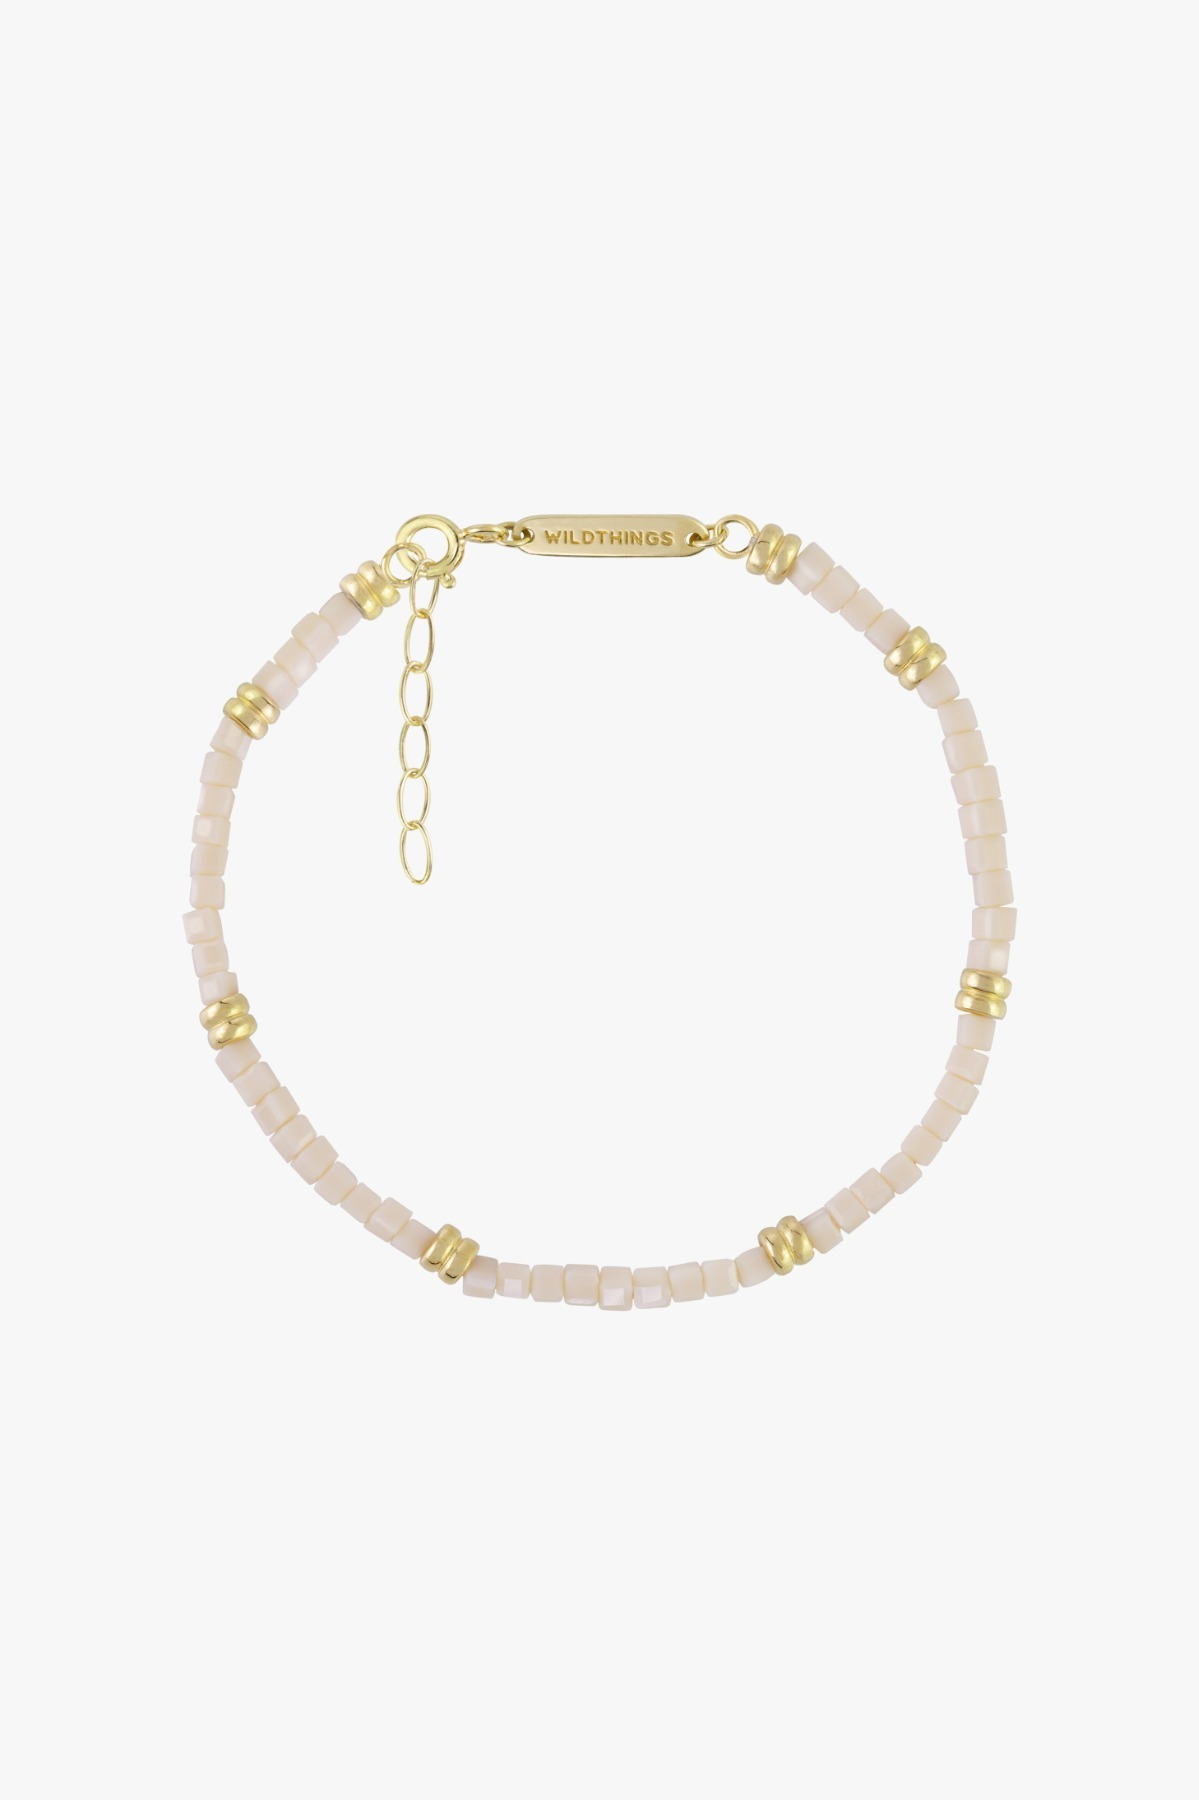 wildthings collectables Desert bracelet gold plated